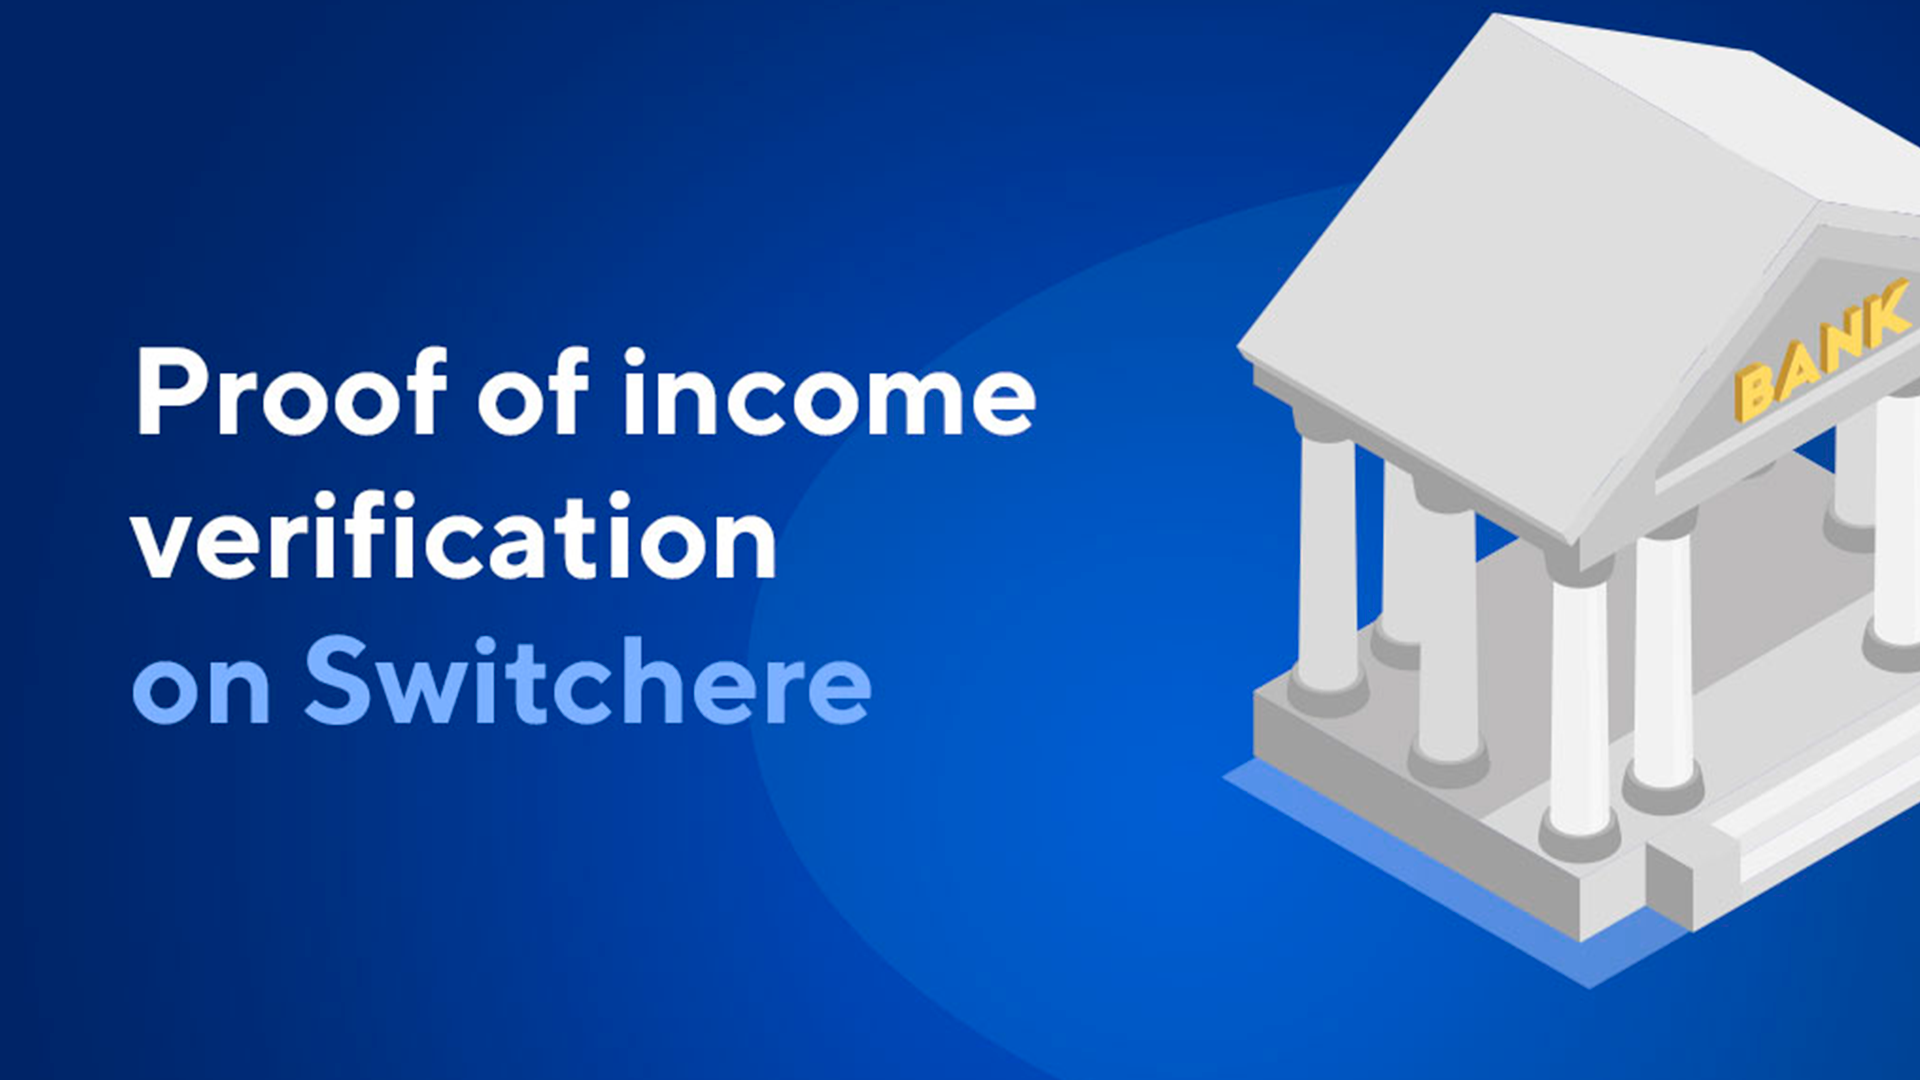 How to Complete Proof of Income Verification on Switchere